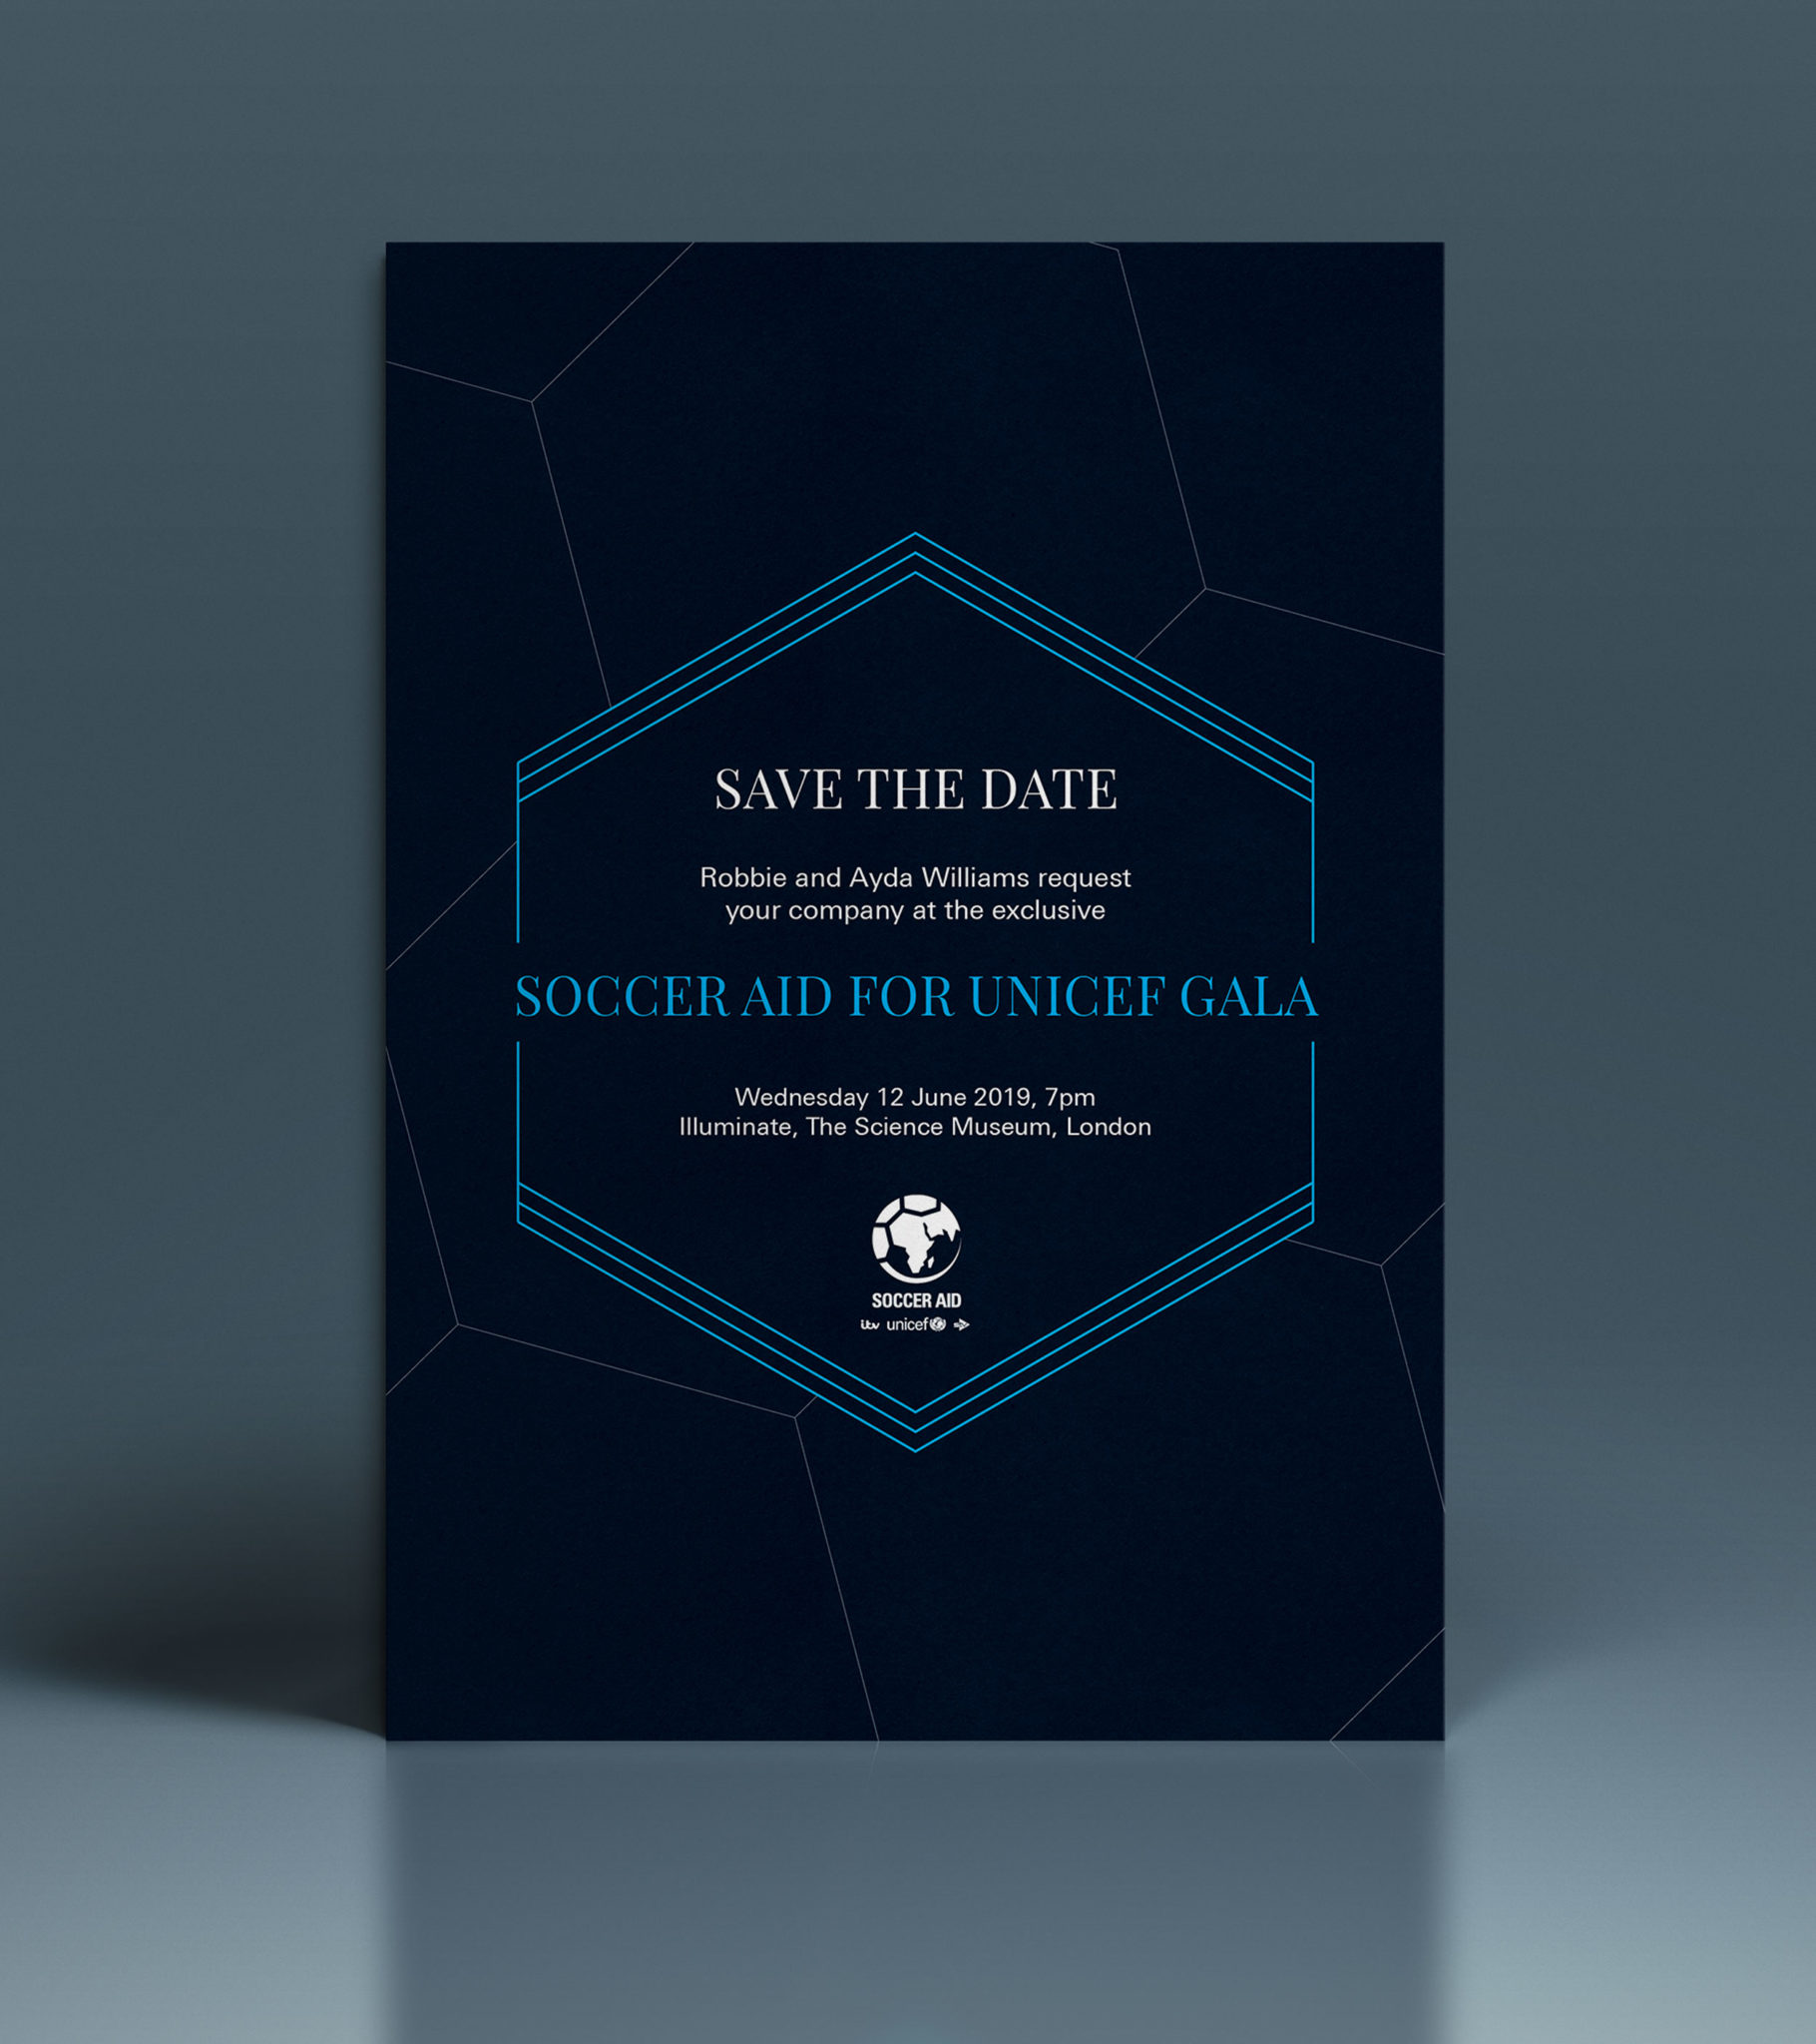 Unicef Soccer Aid save the date document